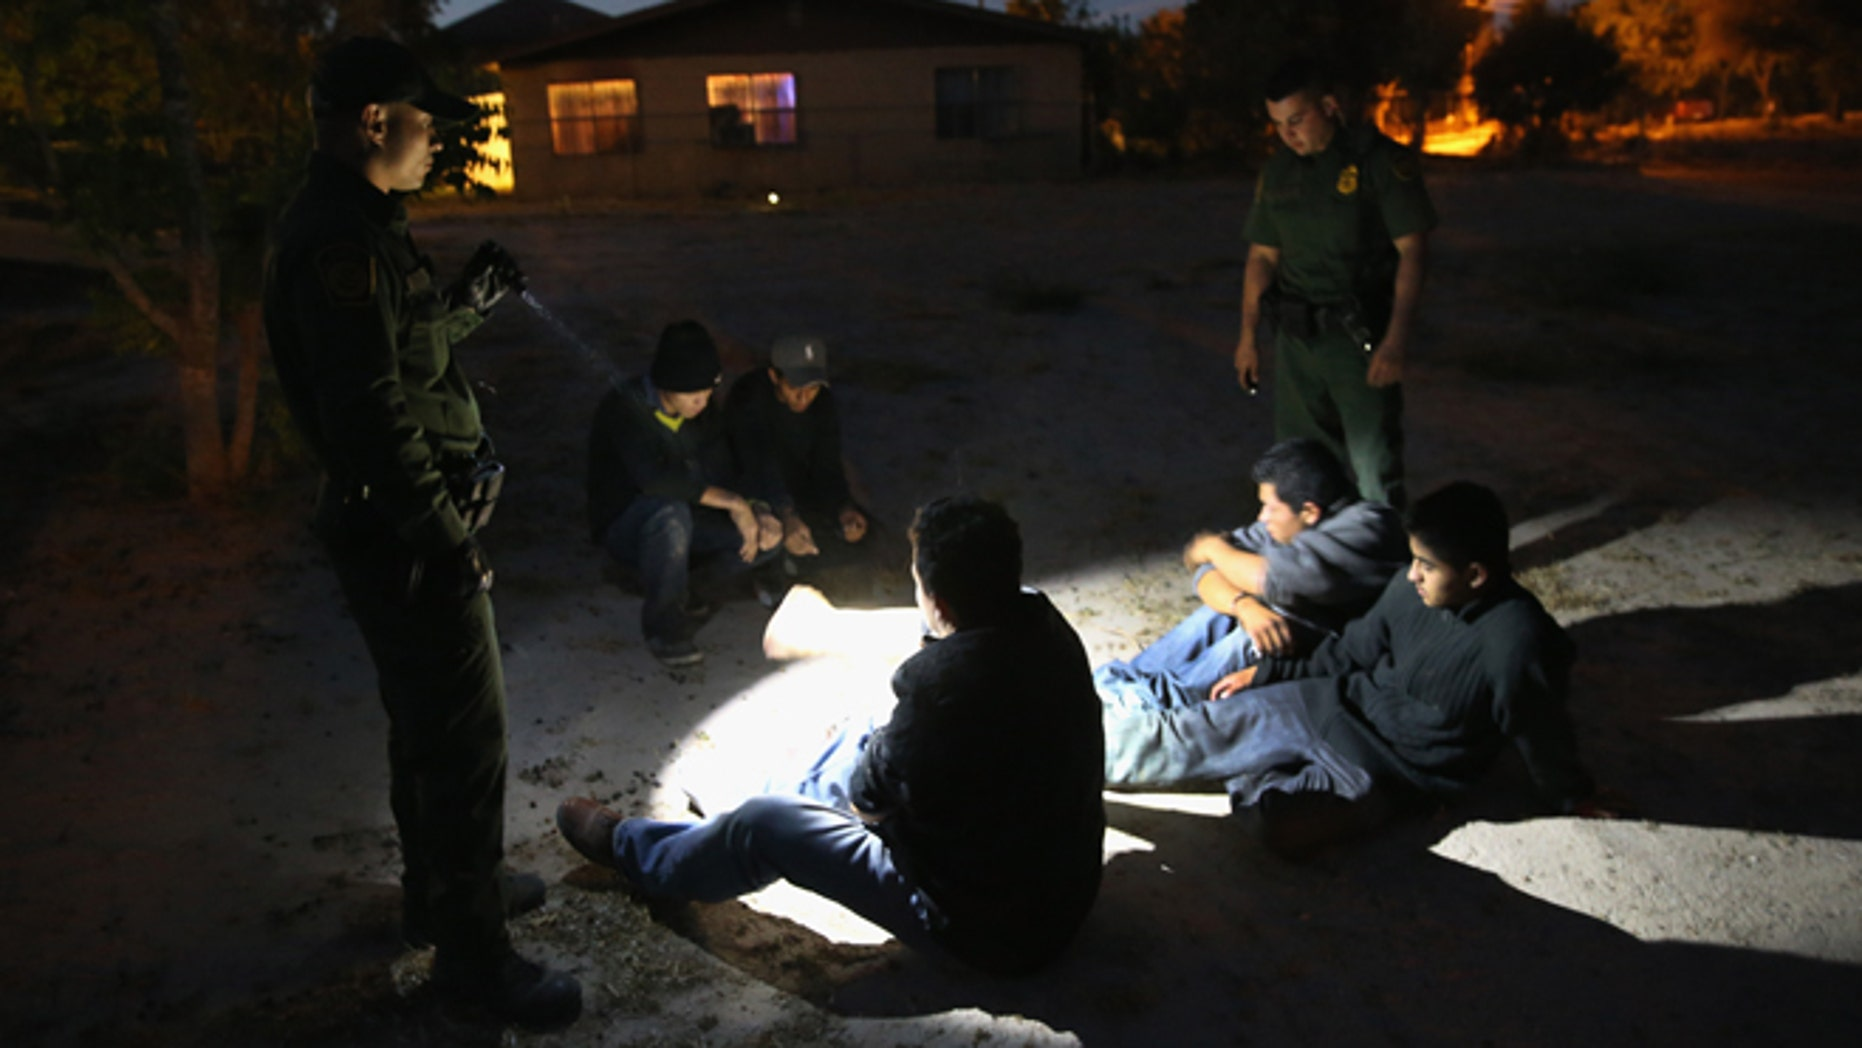 MISSION, TX - APRIL 11: U.S. Border Patrol agents detain undocumented immigrants who had crossed from Mexico into the United States on April 11, 2013 in Mission, Texas. In the last month the Border Patrol's Rio Grande Valley sector has seen a spike in the number of immigrants crossing the river from Mexico into Texas. With more apprehensions, they have struggled to deal with overcrowding while undocumented immigrants are processed for deportation. According to the Border Patrol, undocumented immigrant crossings have increased more than 50 percent in Texas' Rio Grande Valley sector in the last year. Border Patrol agents say they have also seen an additional surge in immigrant traffic since immigration reform negotiations began this year in Washington D.C. Proposed refoms could provide a path to citizenship for many of the estimated 11 million undocumented workers living in the United States.  (Photo by John Moore/Getty Images)